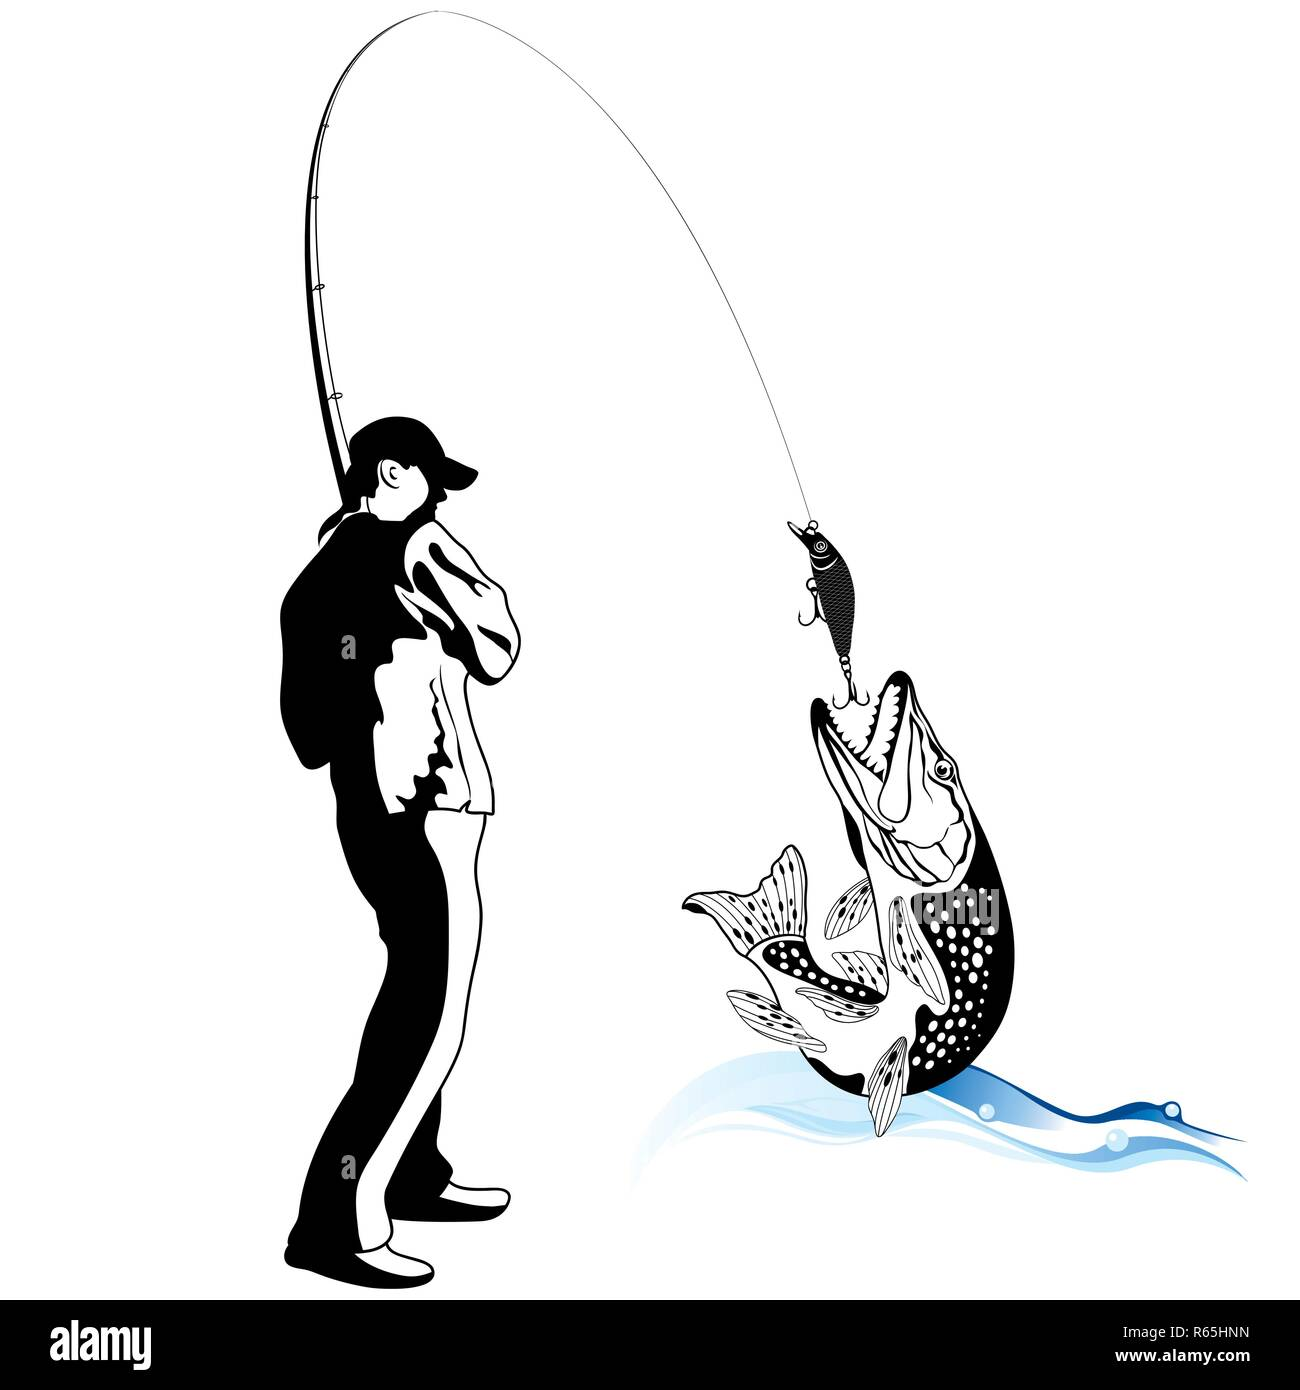 Fisherman caught a pike, vector illustration - Stock Image